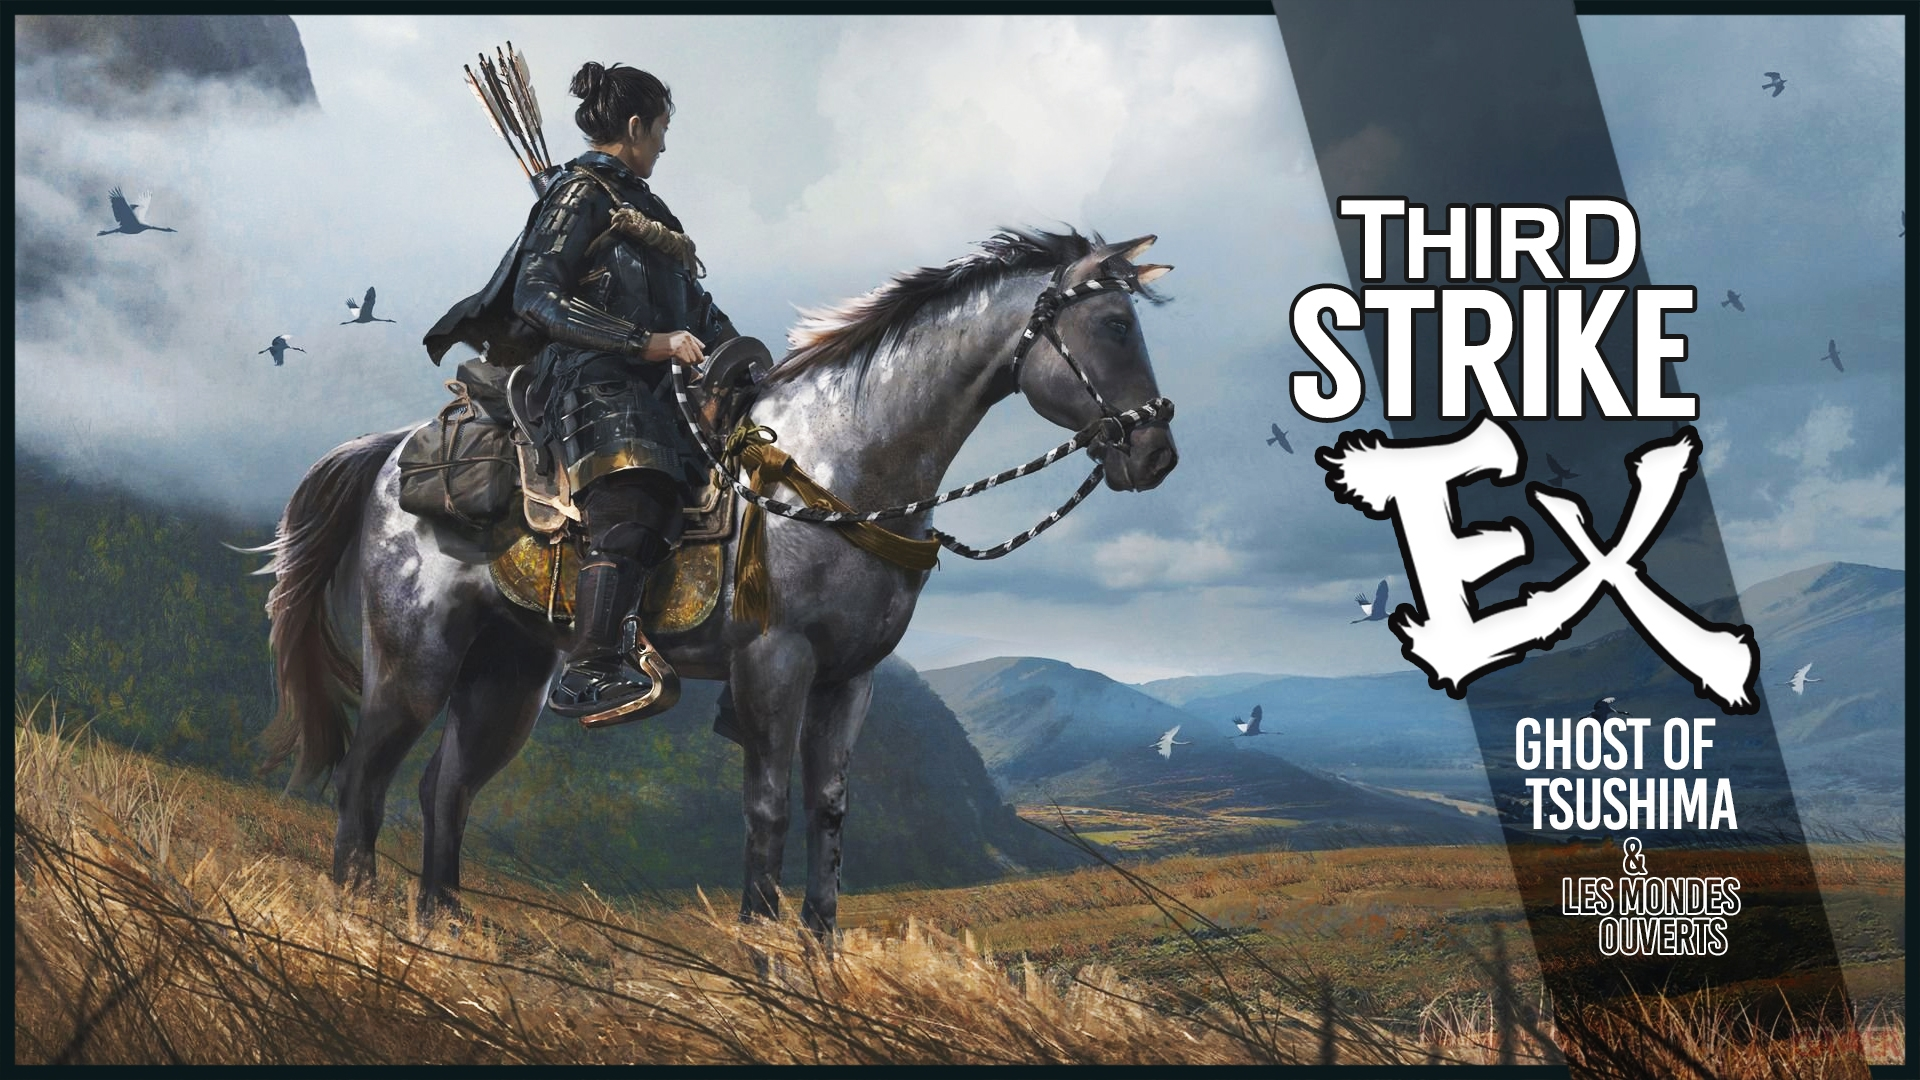 Third Strike #EX - Ghost of Tsushima & Les mondes ouverts